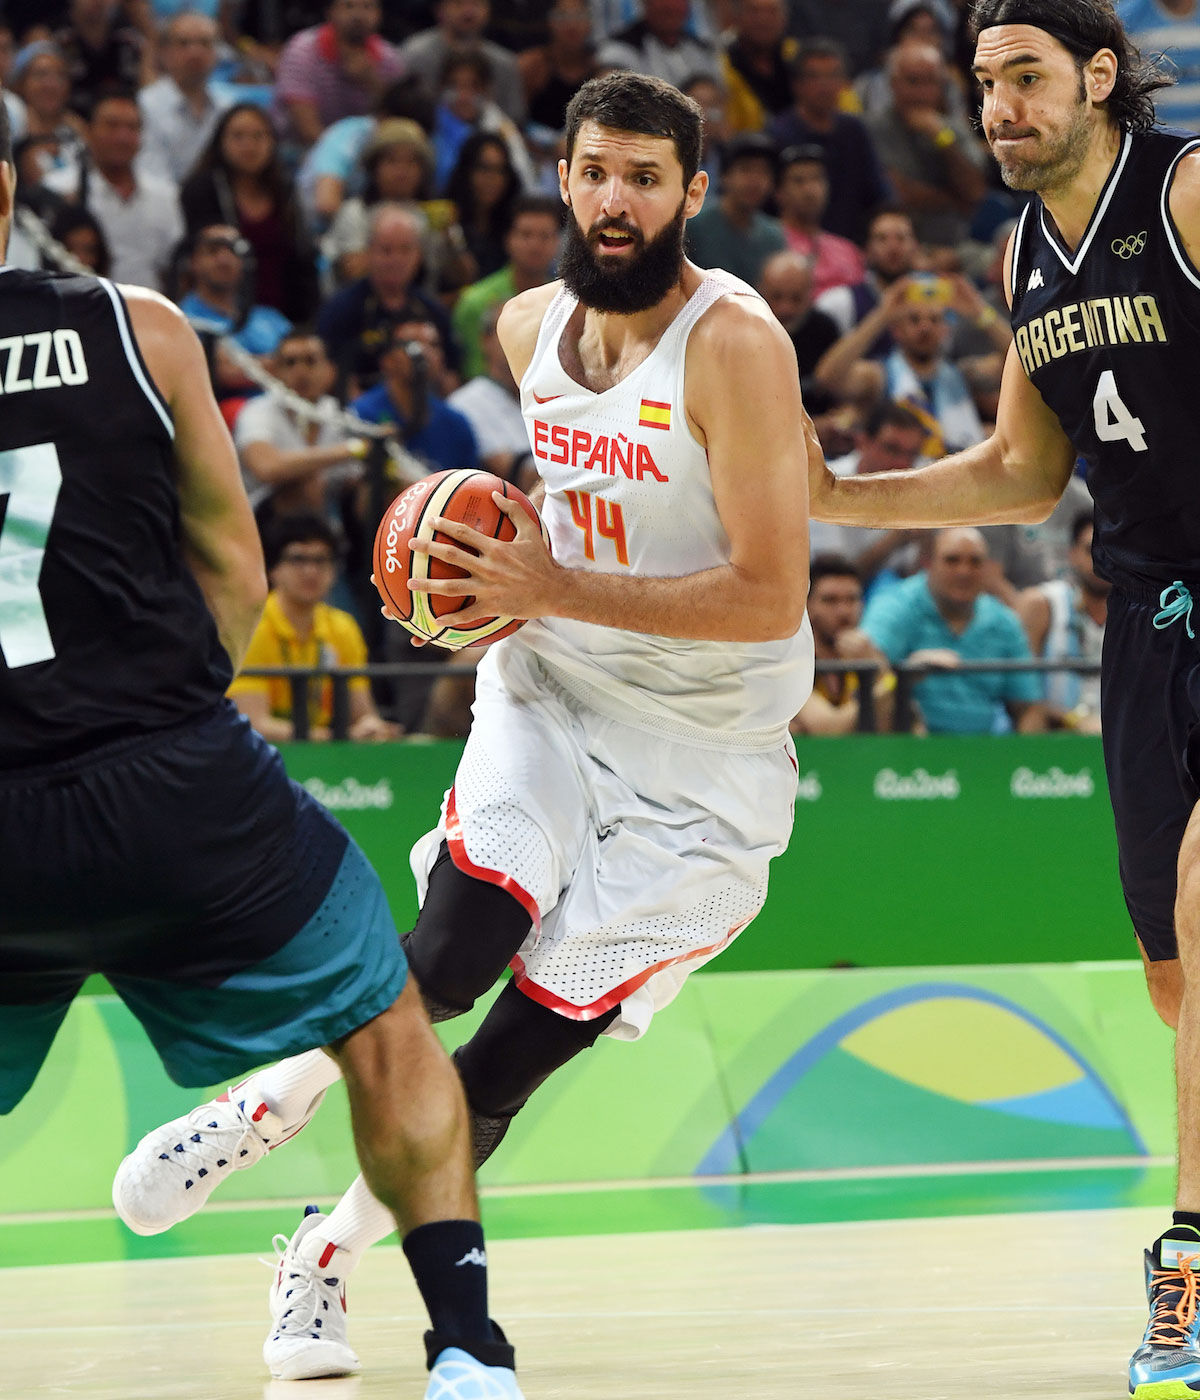 Nikola Mirotic #44 of Spain handles the ball against Argentina on Day 10 of the Rio 2016 Olympic Games at Carioca Arena 1 on August 15, 2016 in Rio de Janeiro, Brazil.